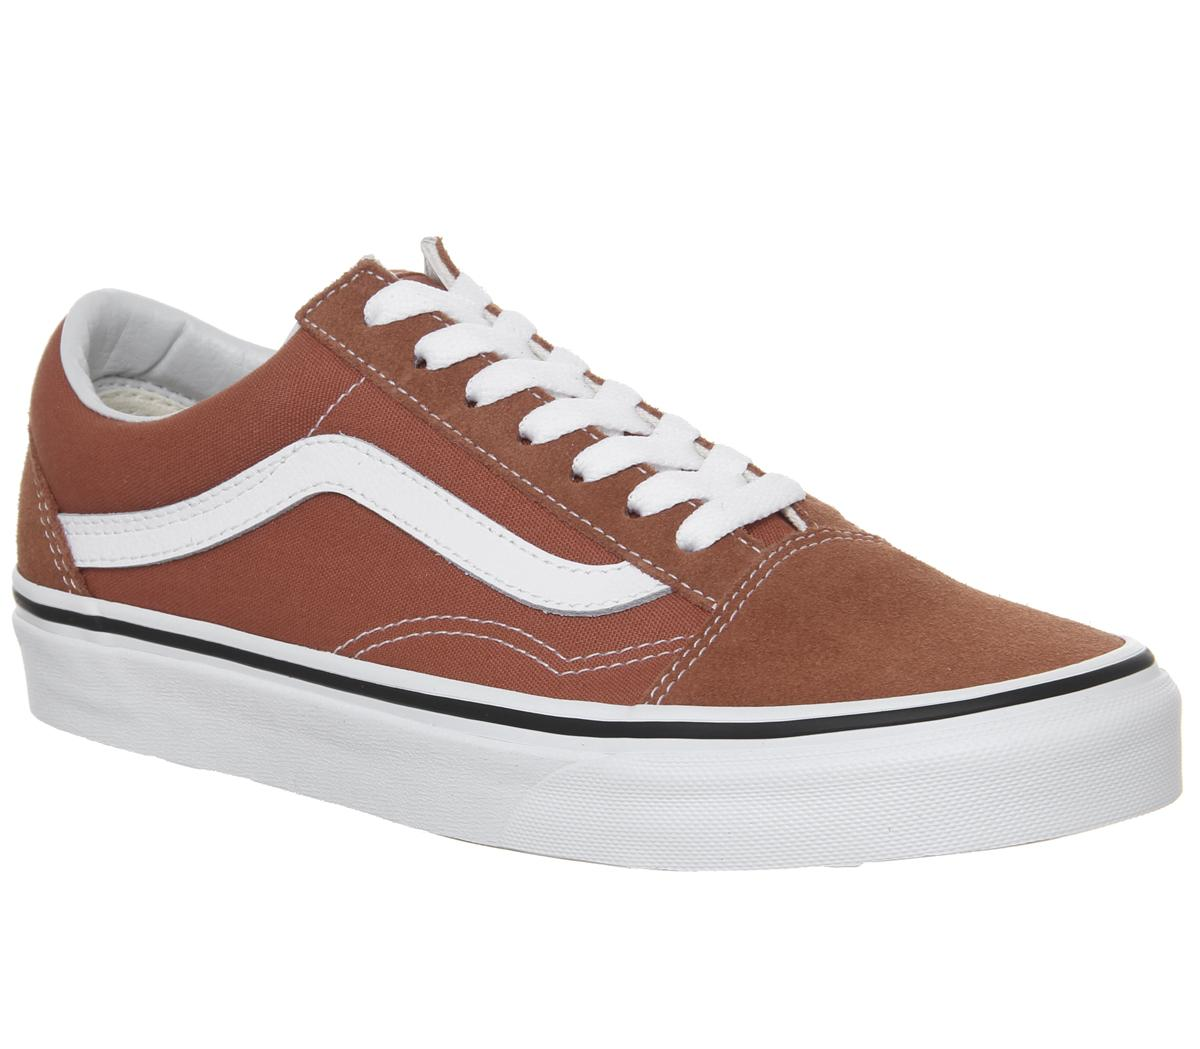 06c0434414 Vans Old Skool Trainers Hot Sauce True White - Unisex Sports